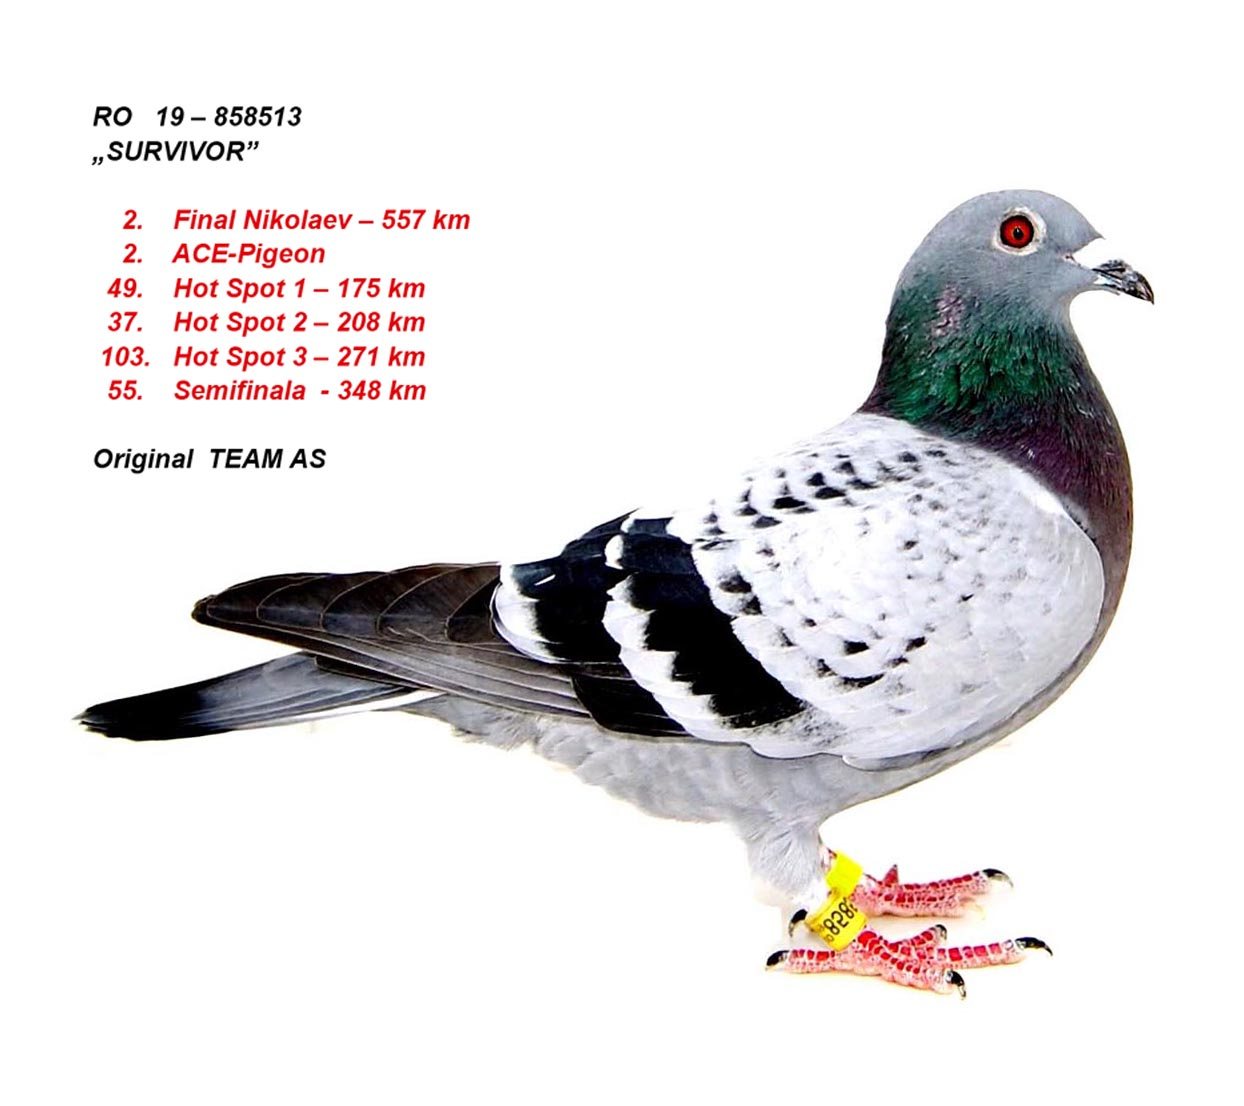 2. FINAL 557km + 2. ACE-PIGEON TEAM AS 19-FCPR-858513